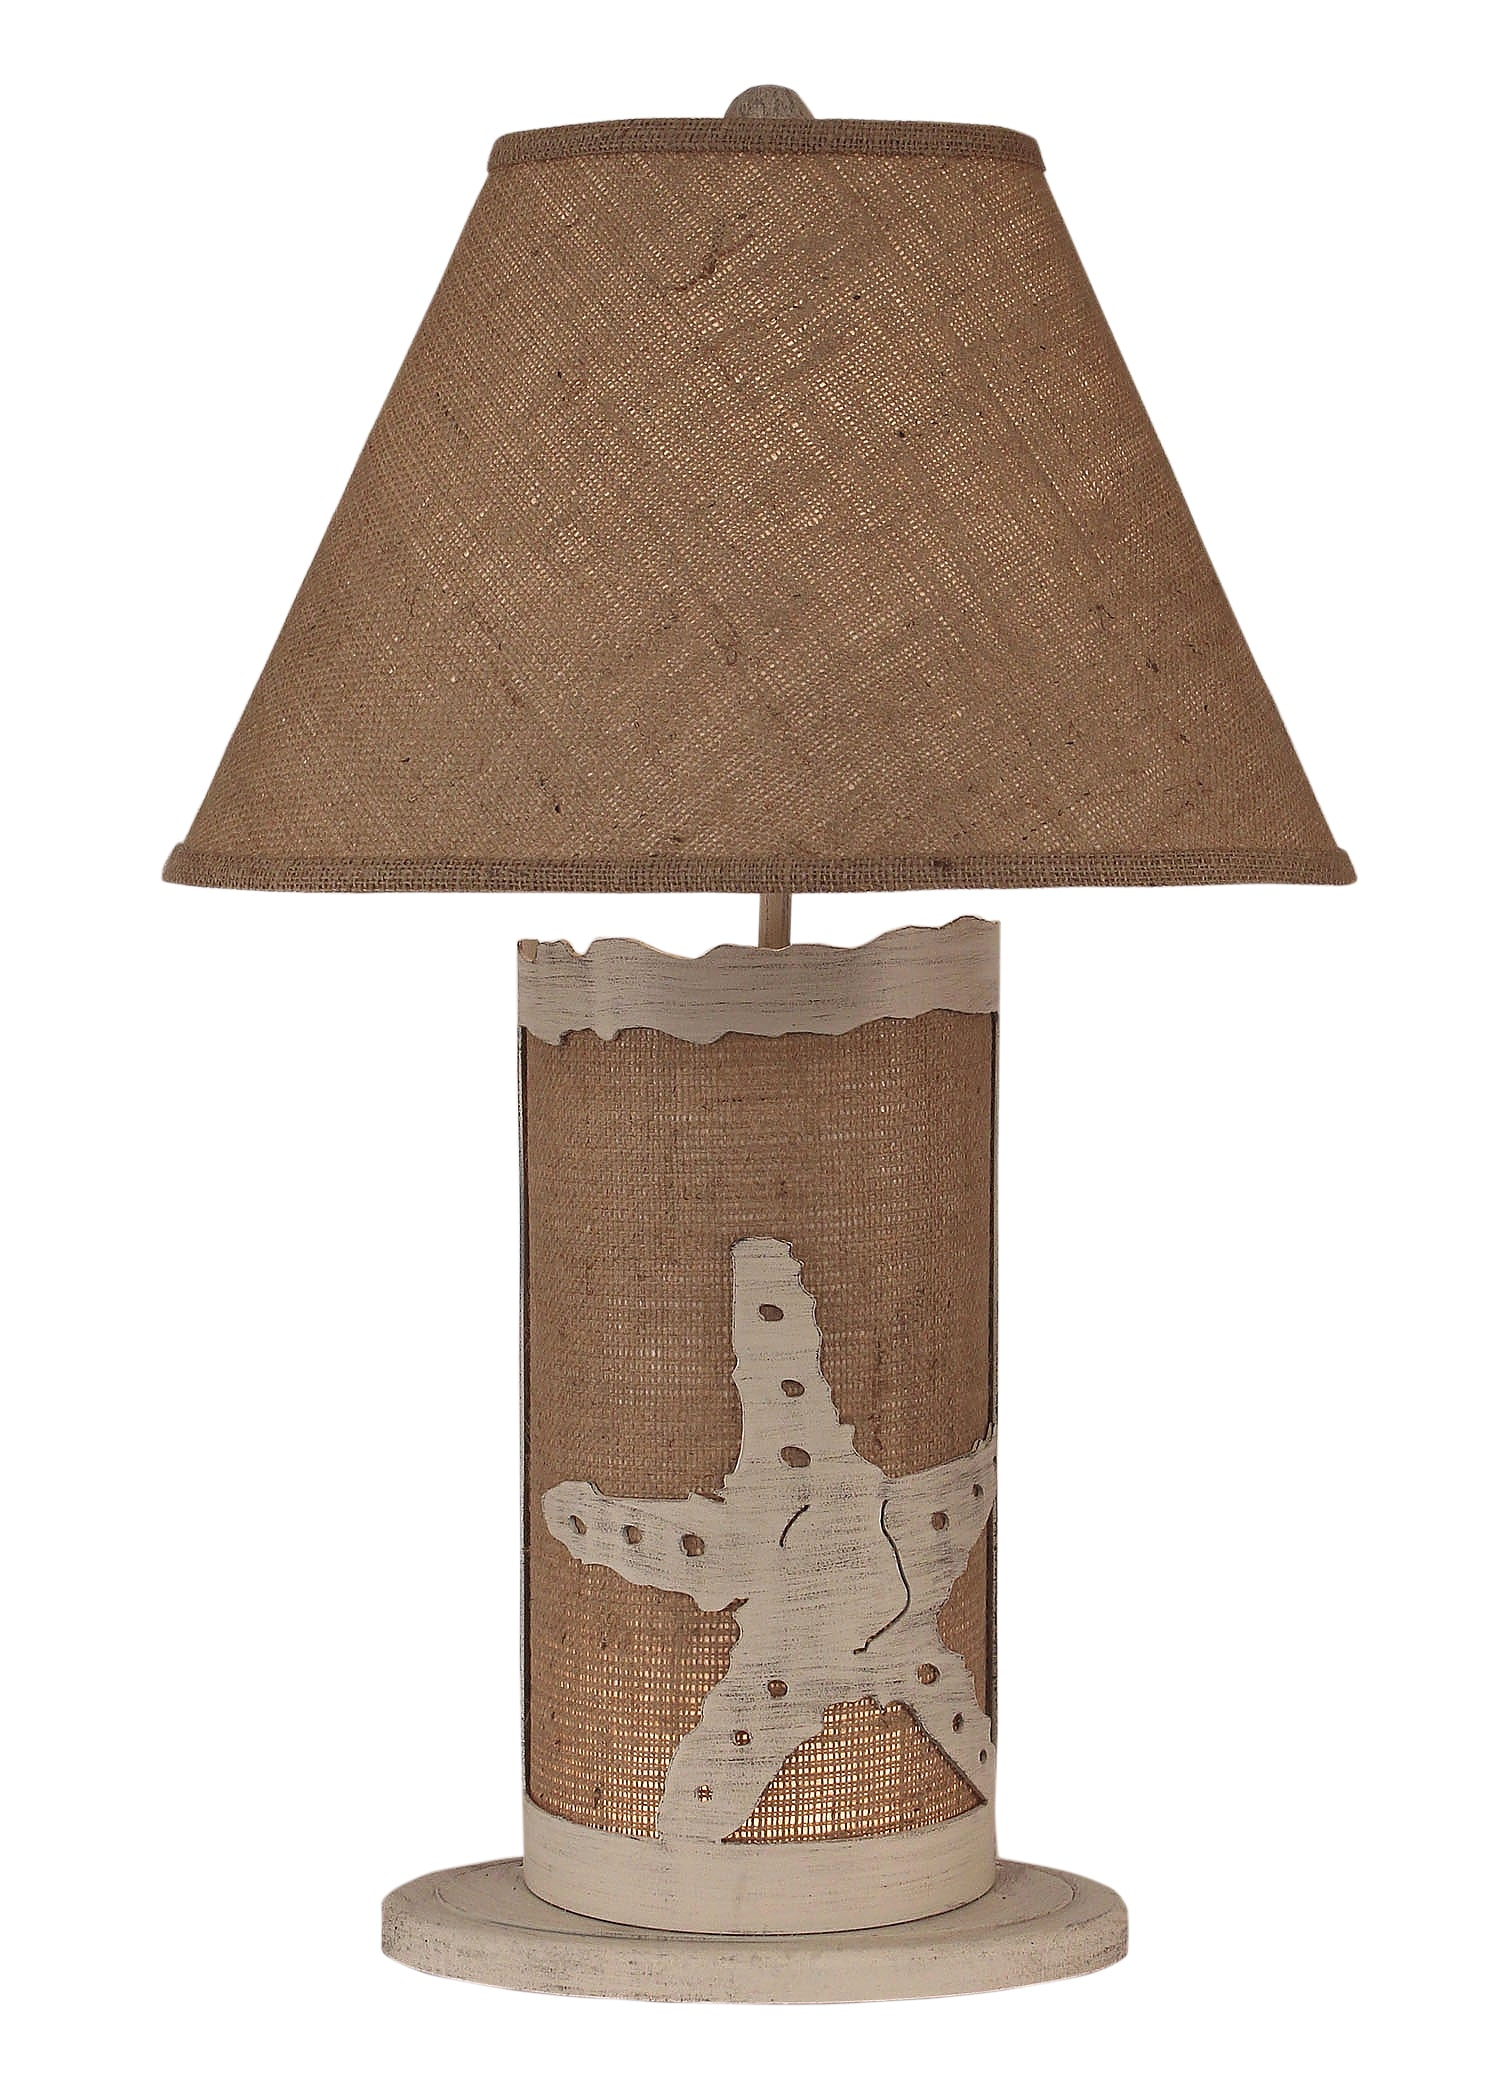 Cottage/Burlap Star Fish Table Lamp w/ Night Light - Coast Lamp Shop